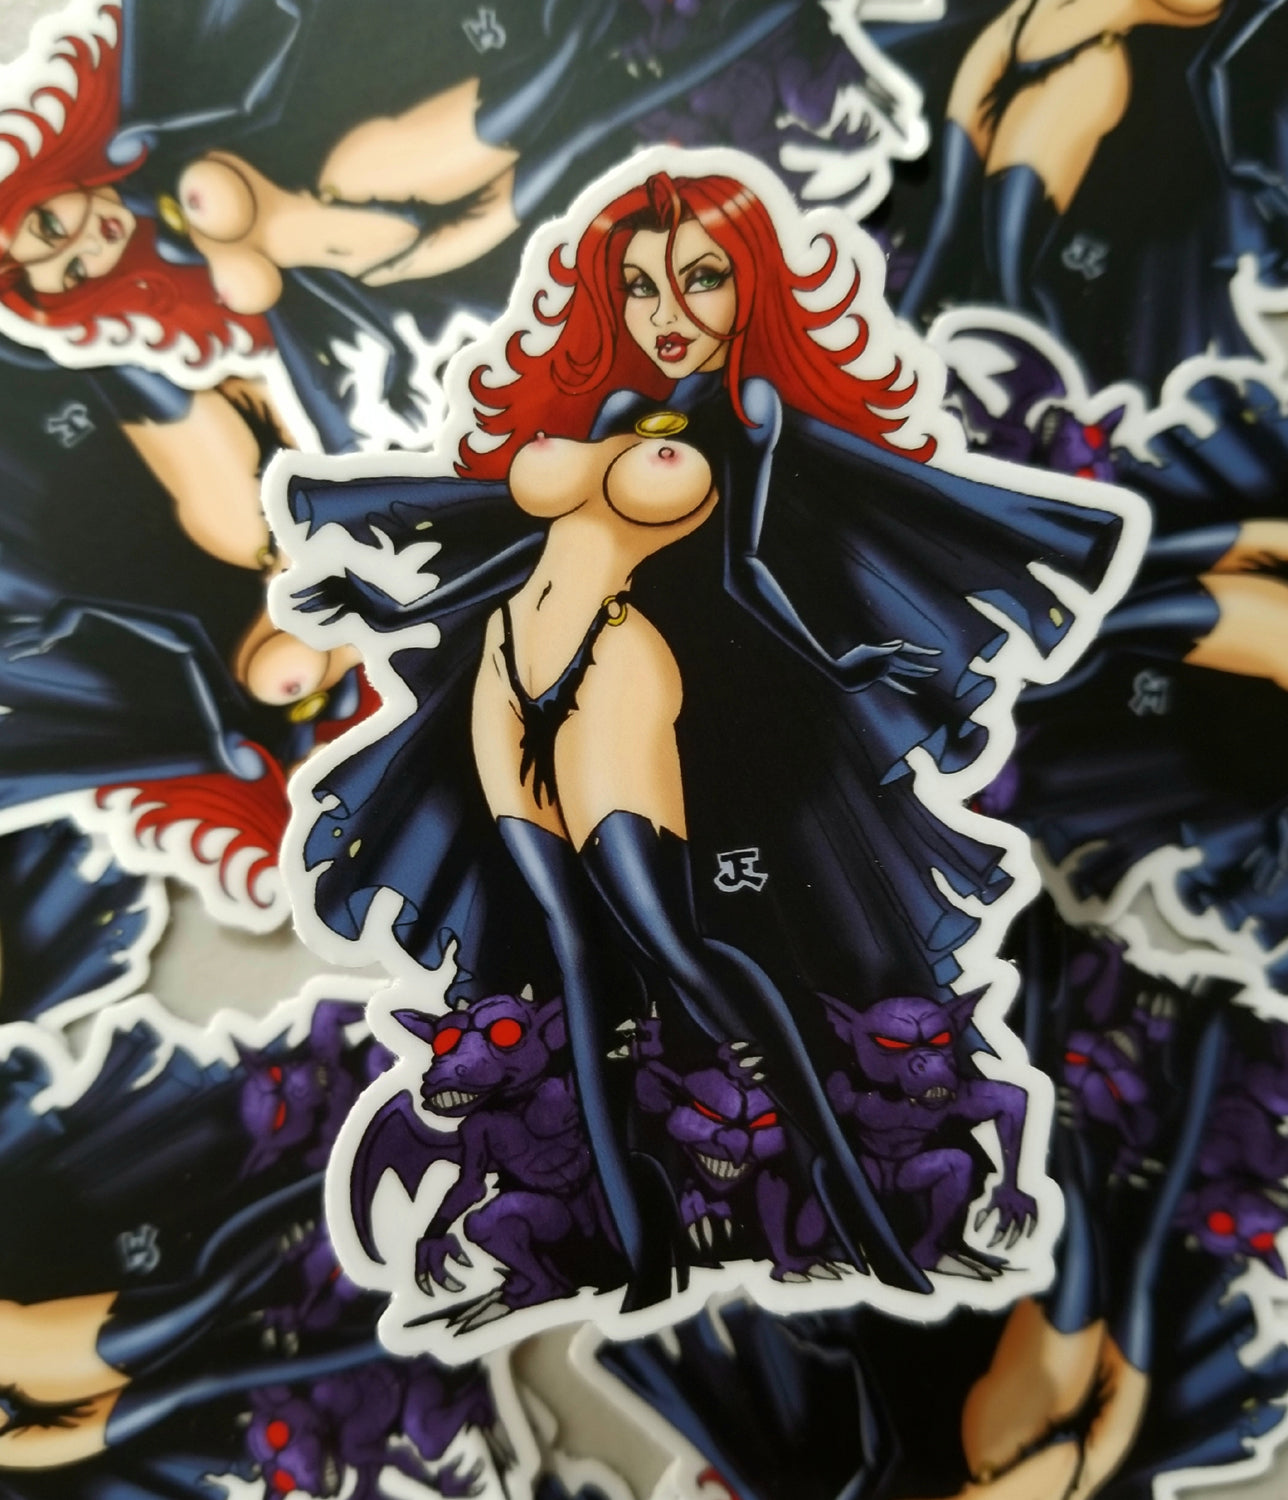 Goblin Queen (Spicy Version) pin-up vinyl sticker